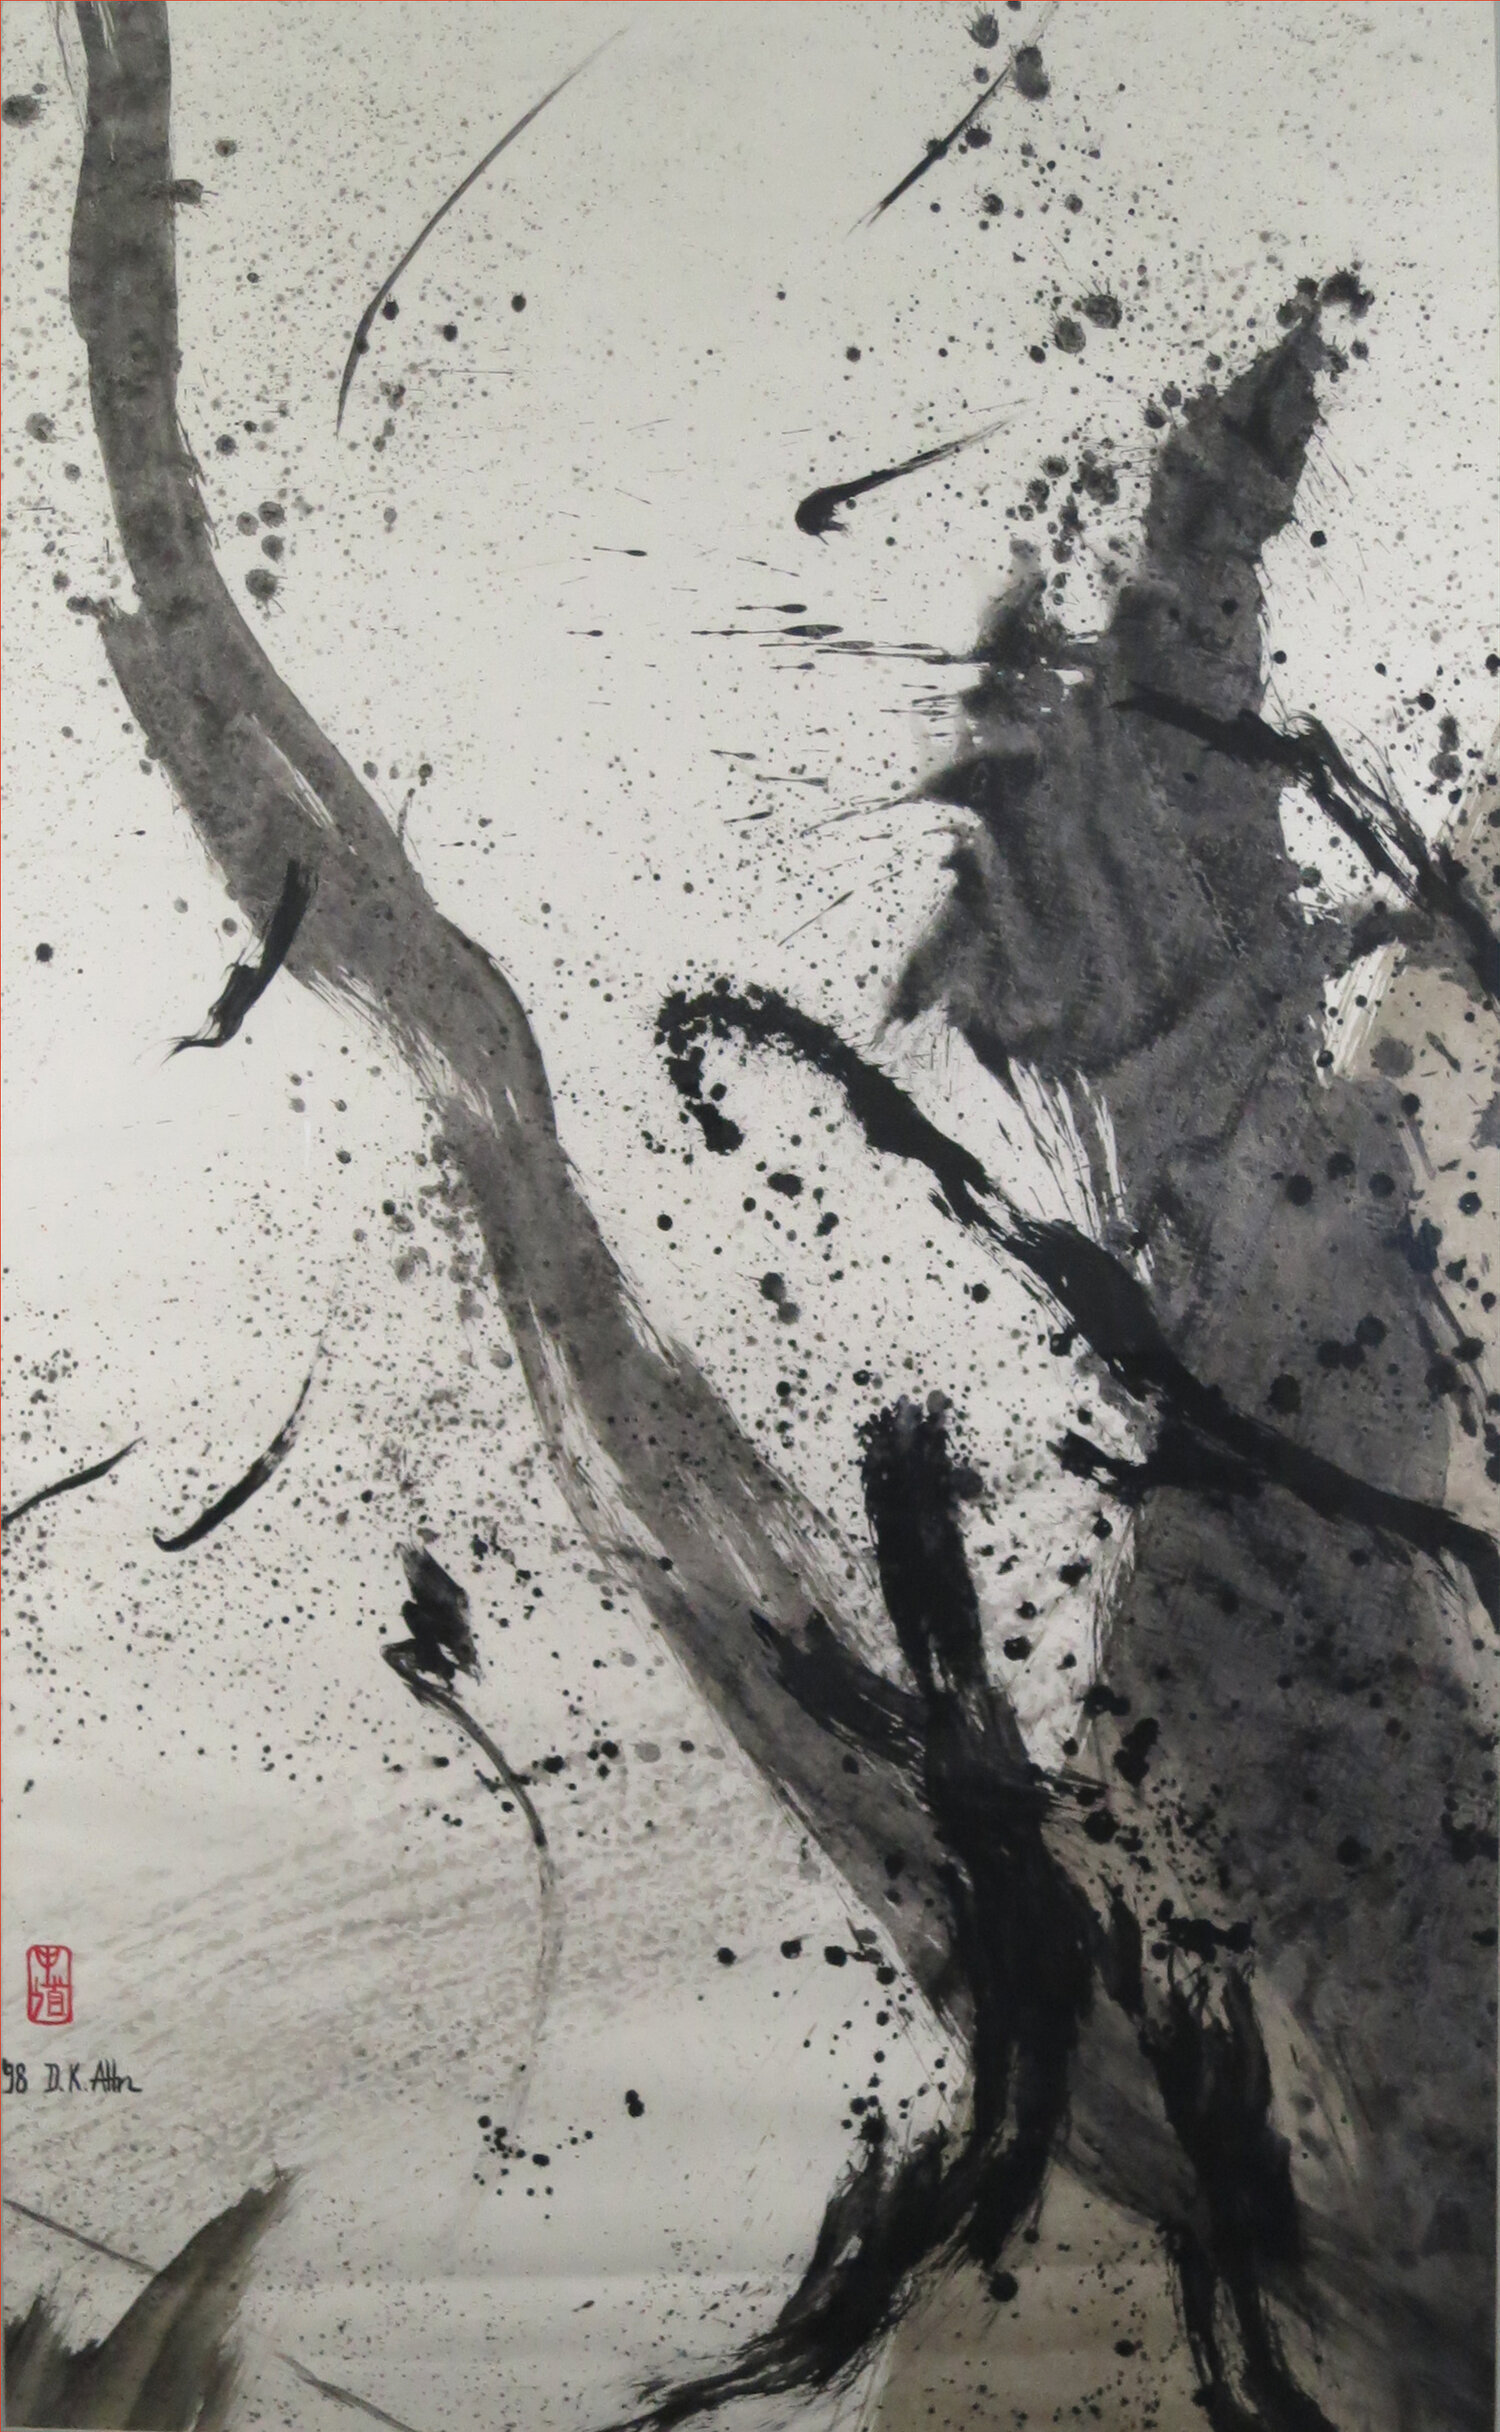 """Old Zen Tree , 1963, Acrylic on Canvas, 54.5"""" x 33"""". Abstract calligraphy with black splatters and wide black strokes going upward on white background."""